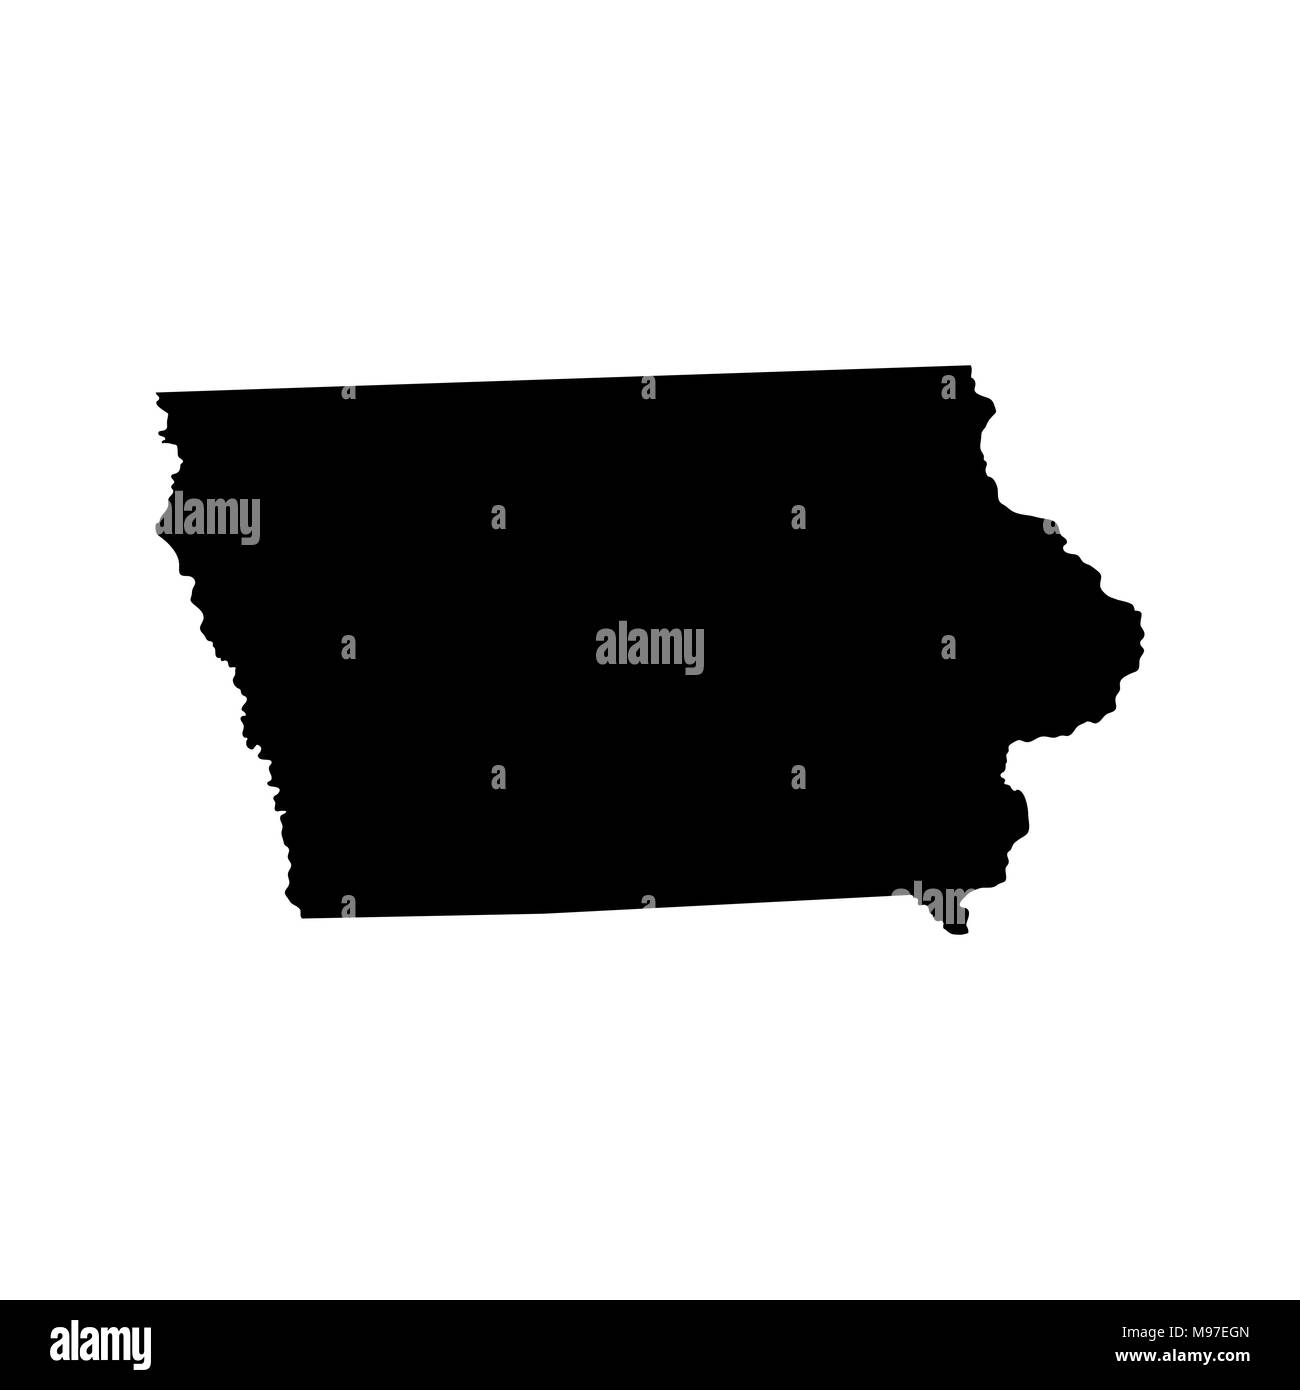 Map Of The U S State Of Iowa Stock Vector Art Illustration